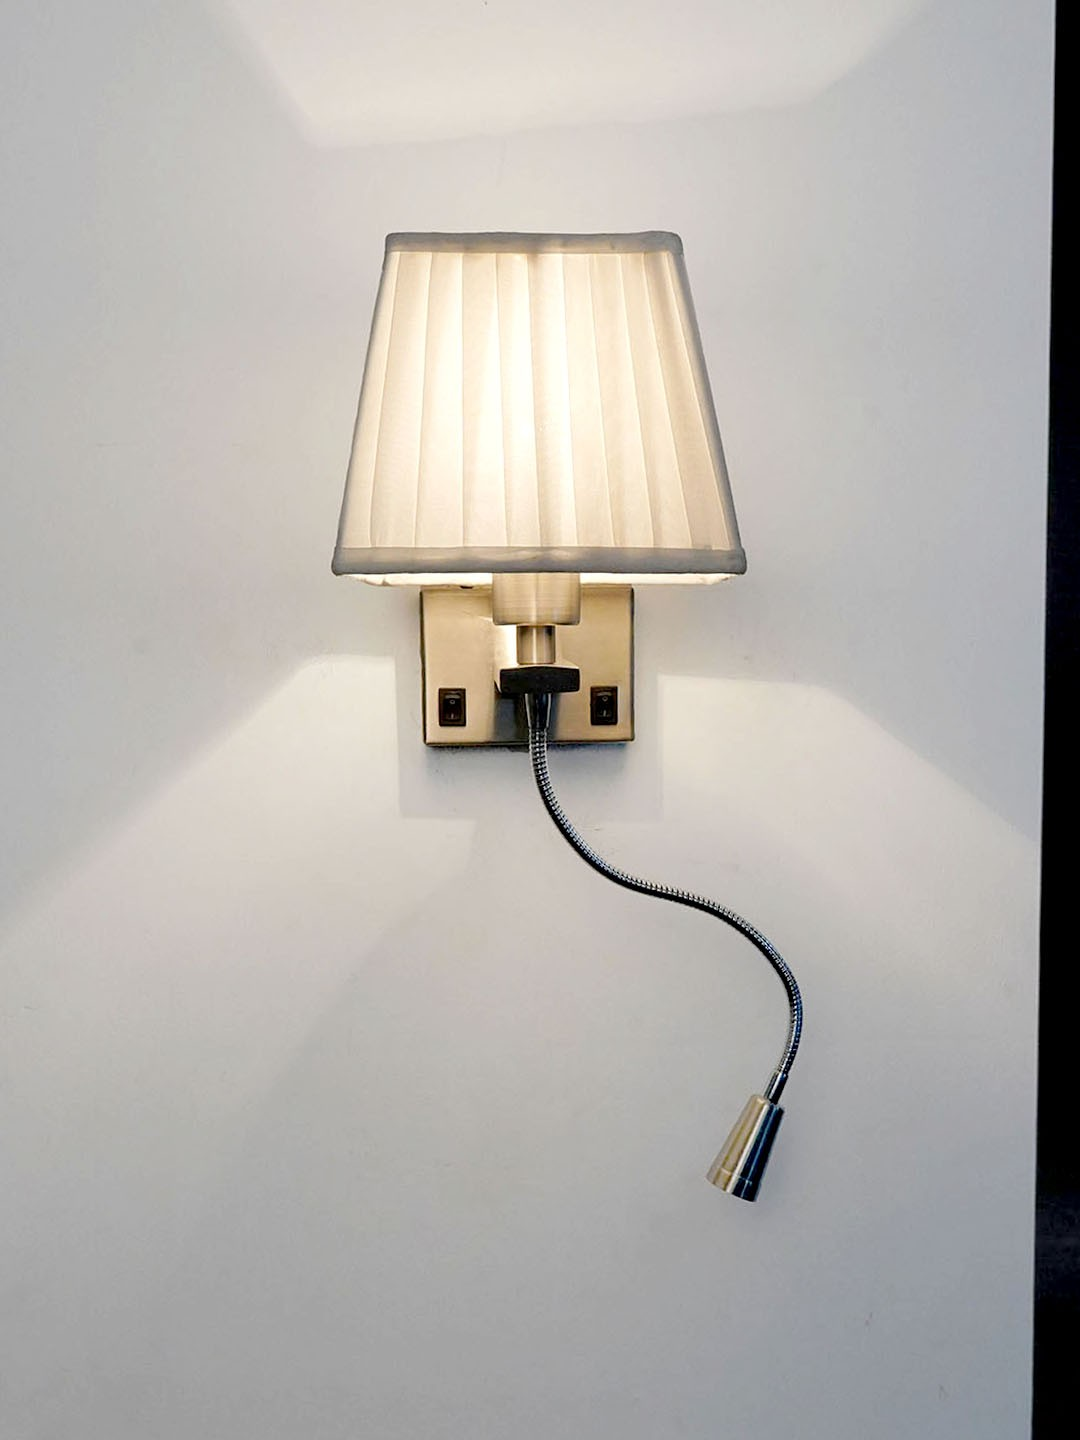 Dual Bedside Wall Light and Flexible LED Reading Light with White Pleated Square Fabric Shade